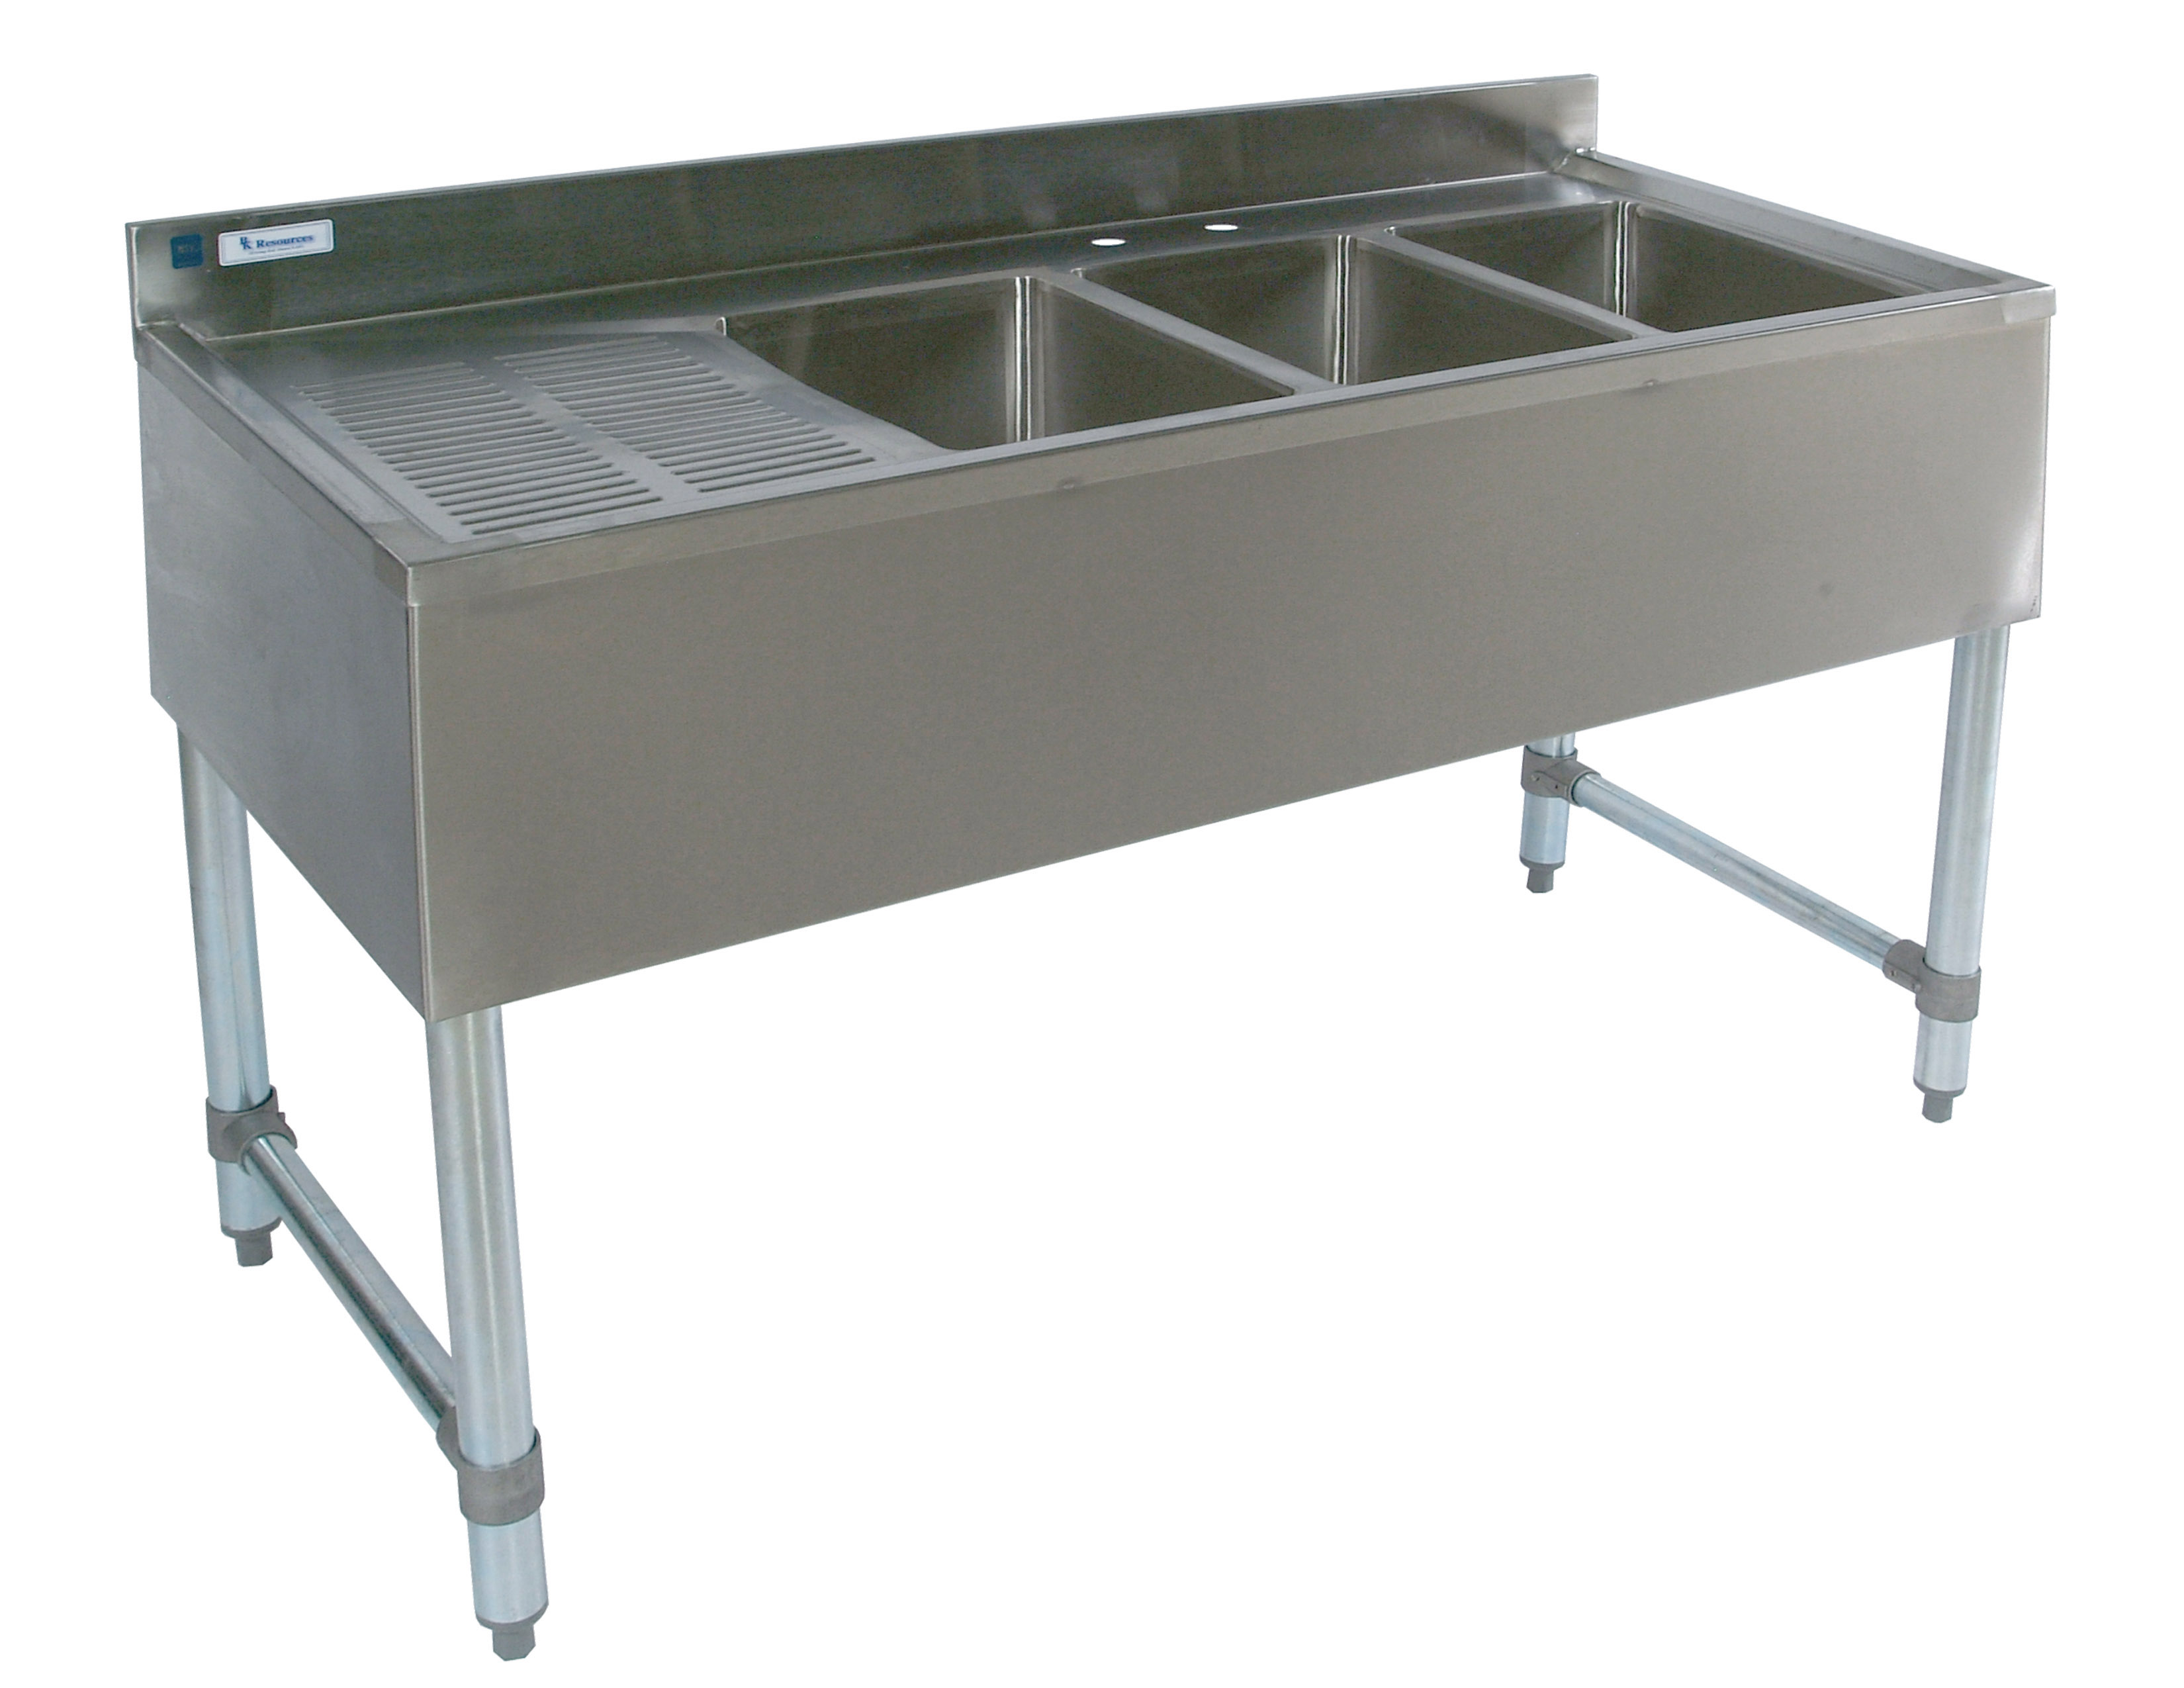 stainless steel 3 compartment bar sink bar sink with drainboard